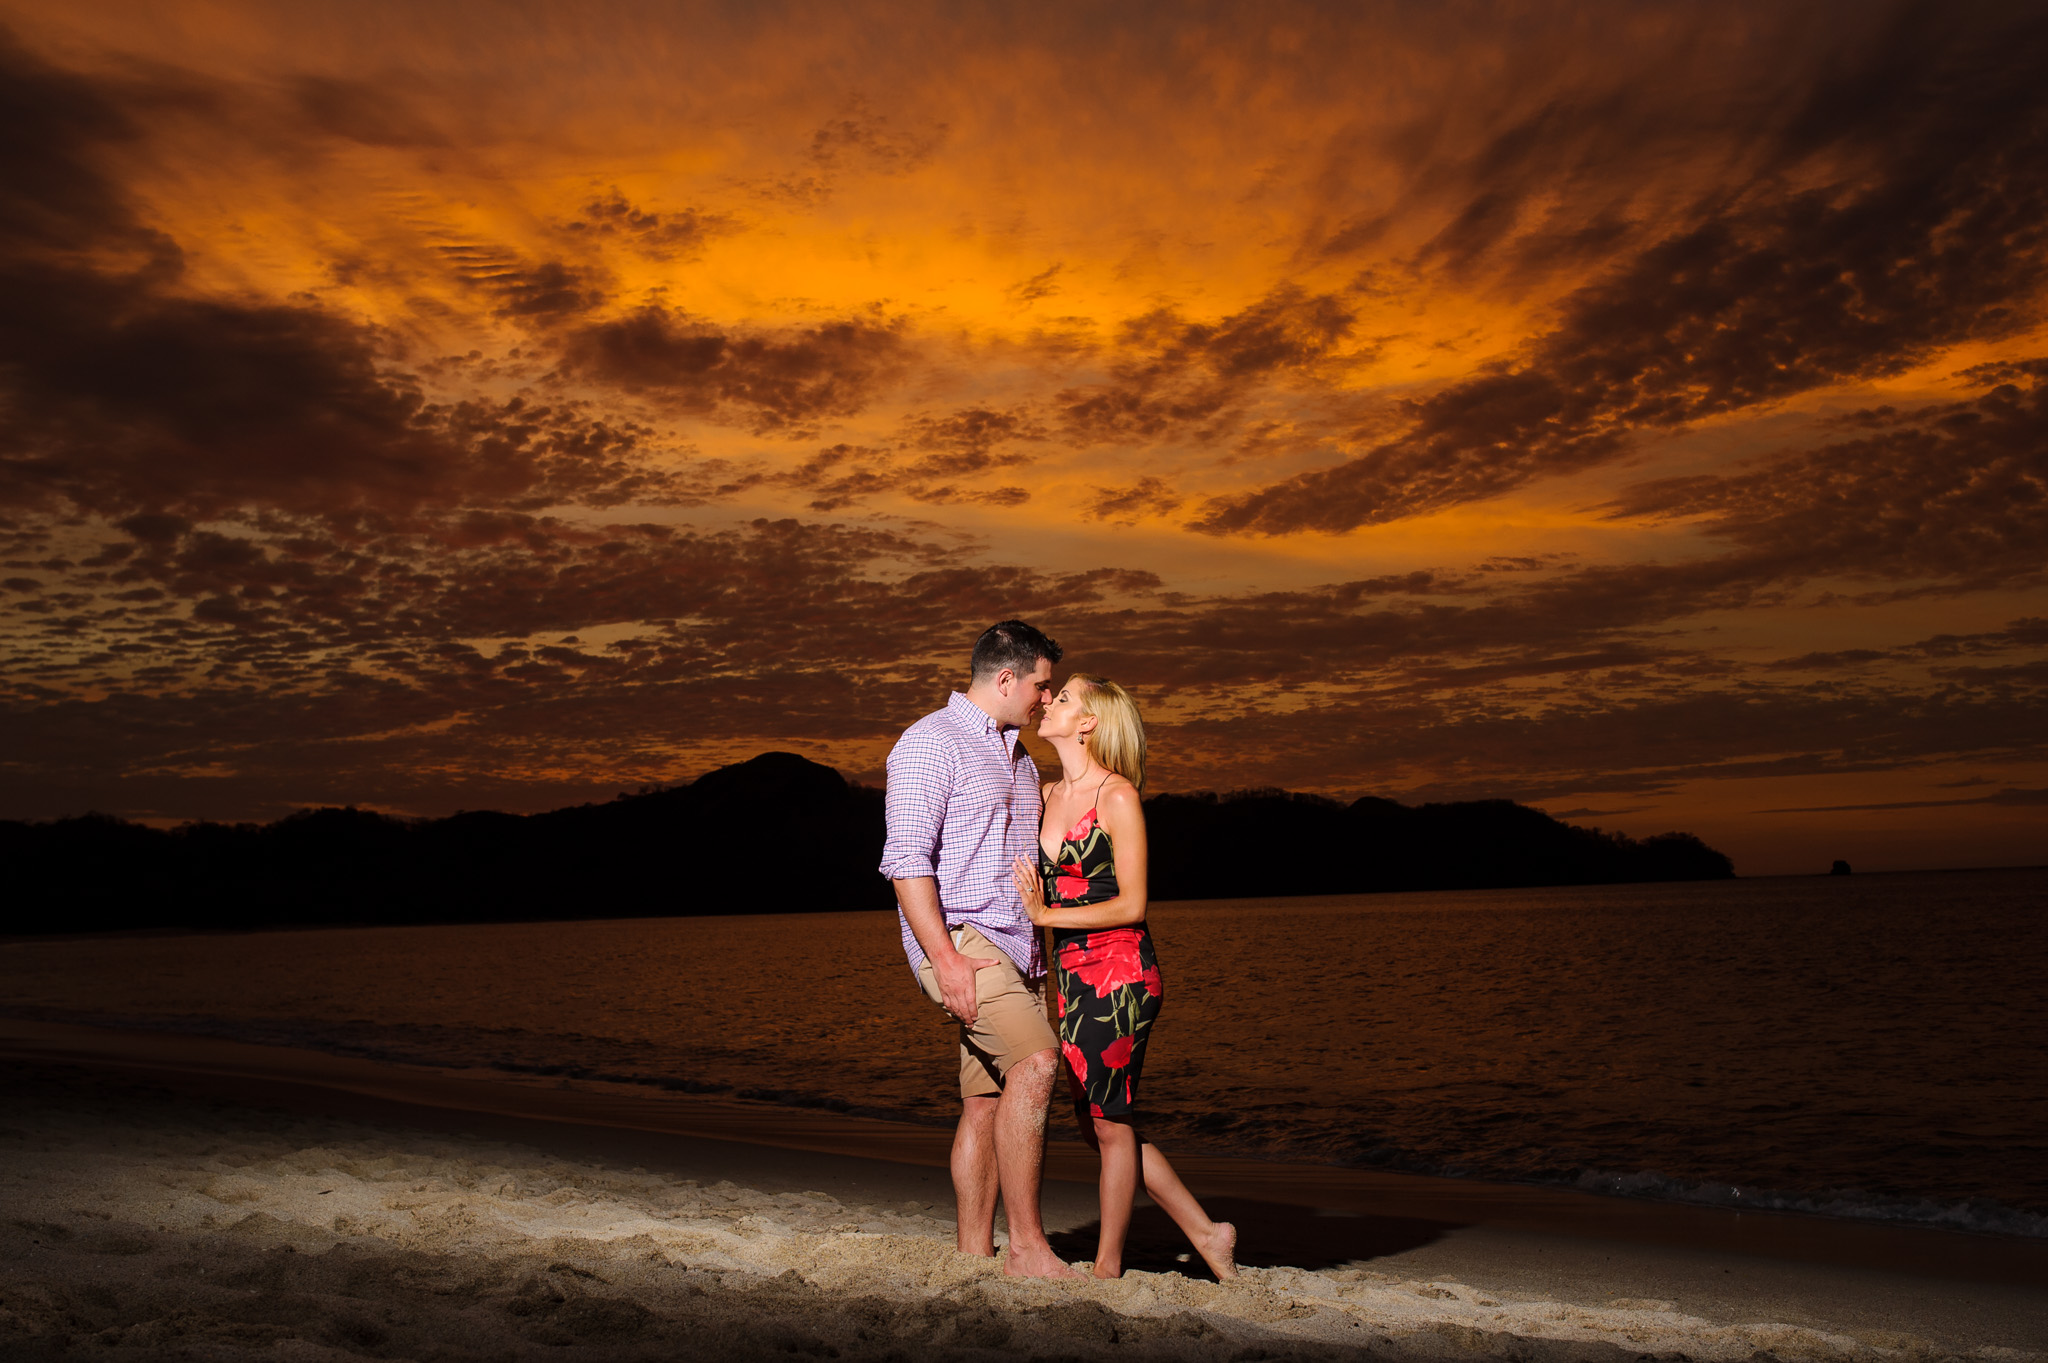 Conchal Costa Rica Engagement Photographer